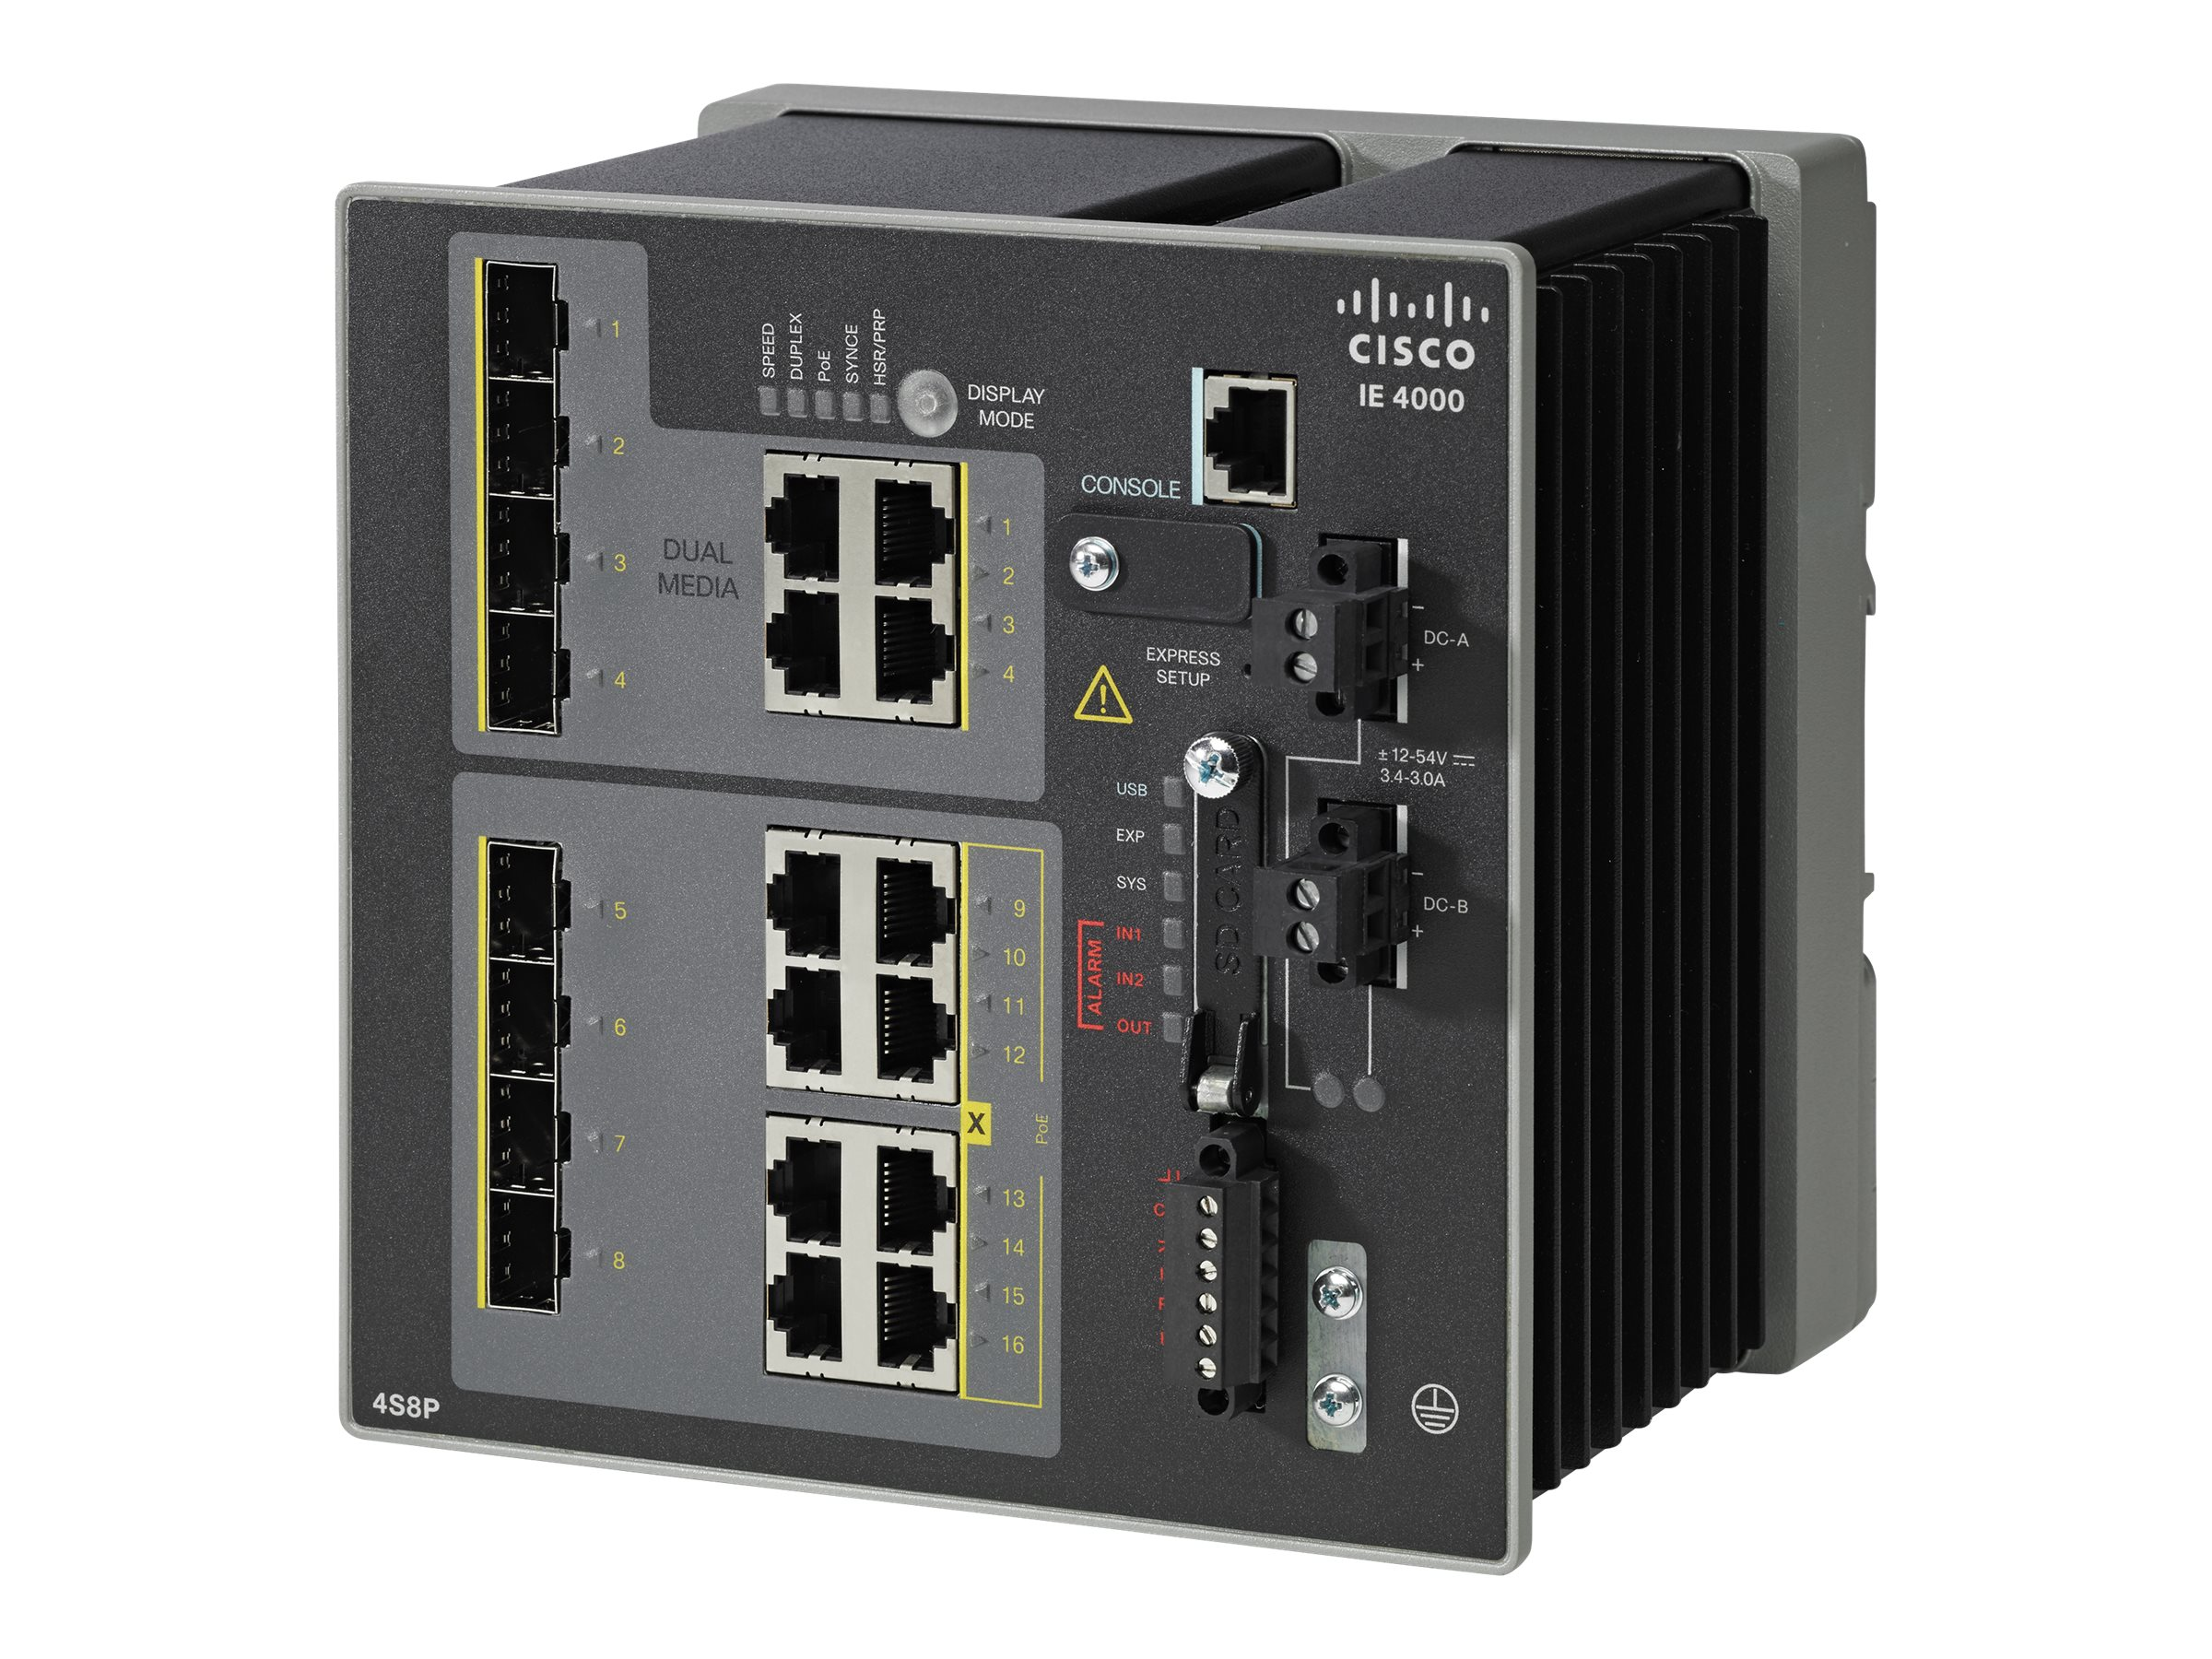 Cisco IE 4000 4 X Combo1G w 4 X 1G POE 4 X1G